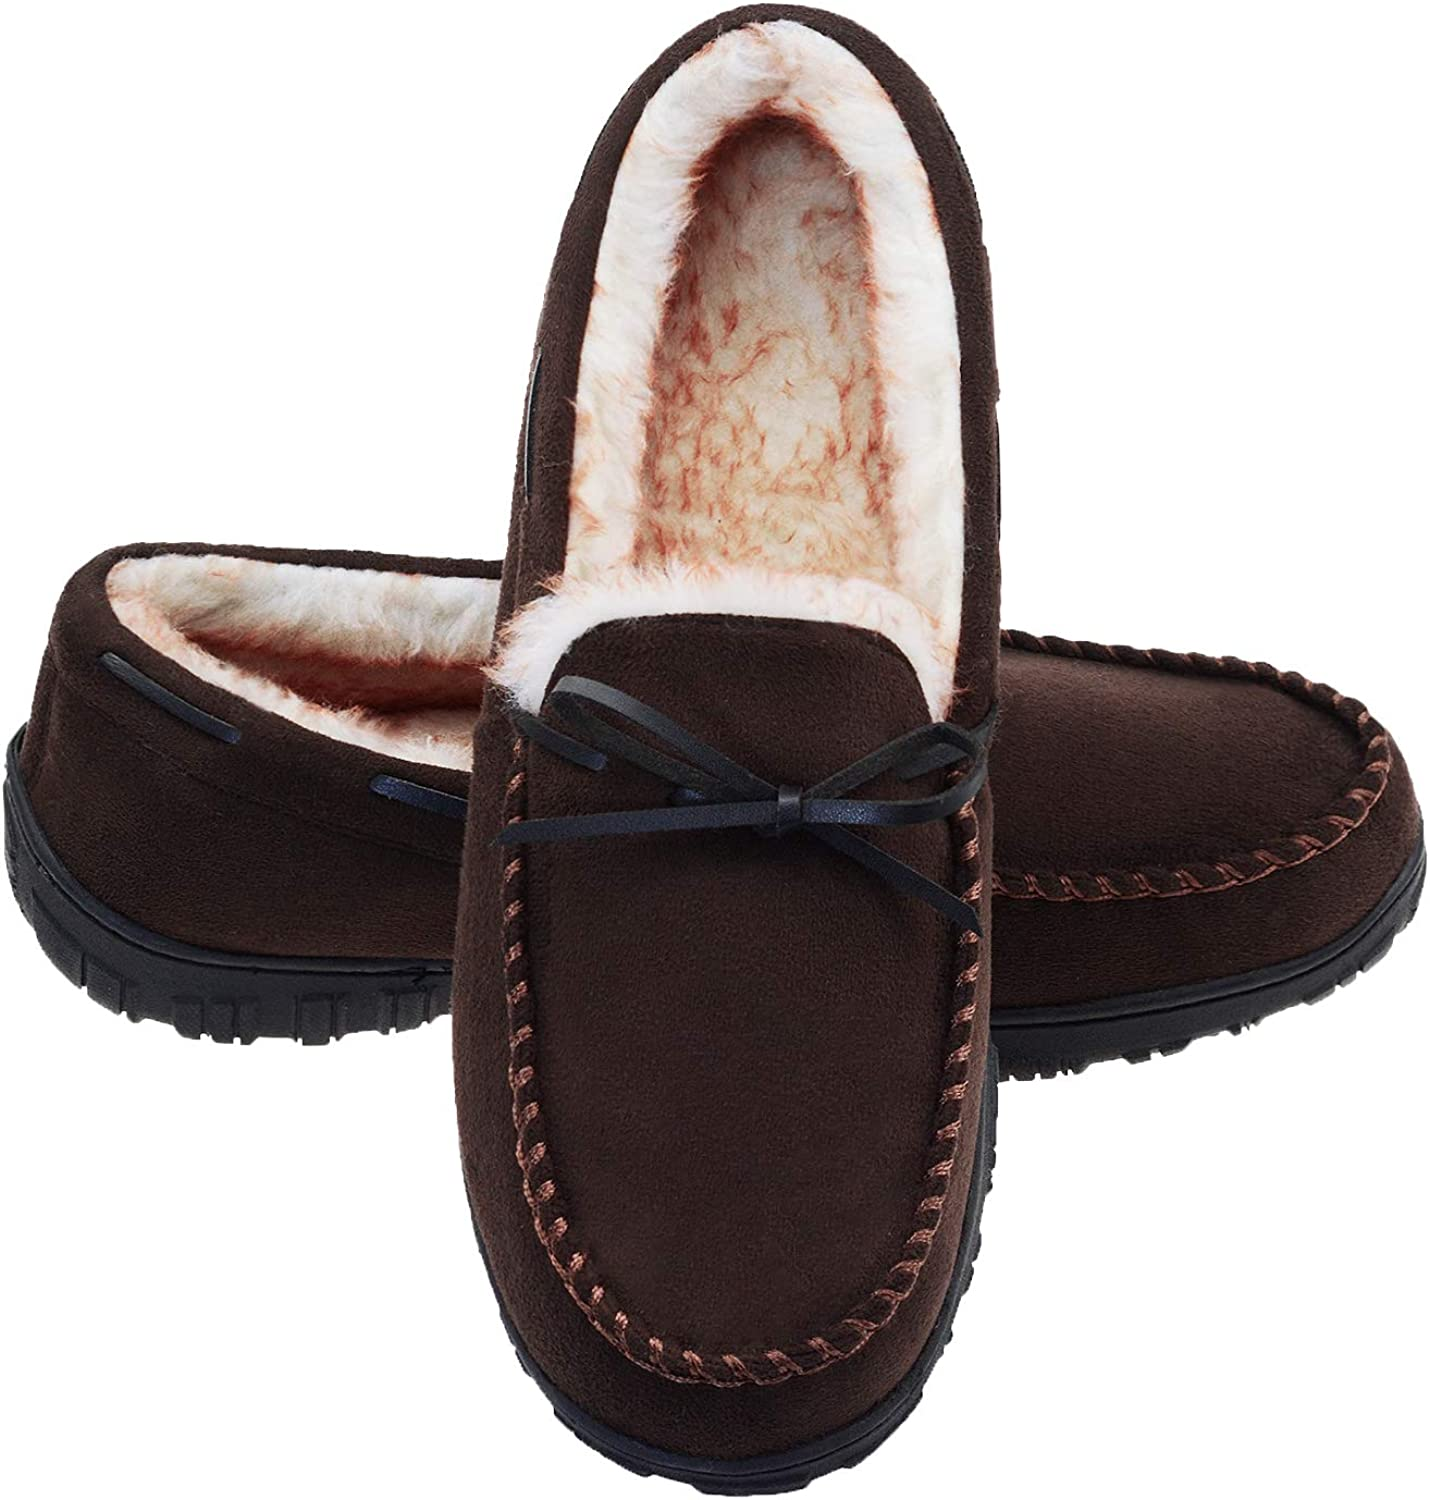 LA PLAGE Mens Slippers Moccasin for Men Indoor/Outdoor Plush Lining Microsuede Slip On House Shoes